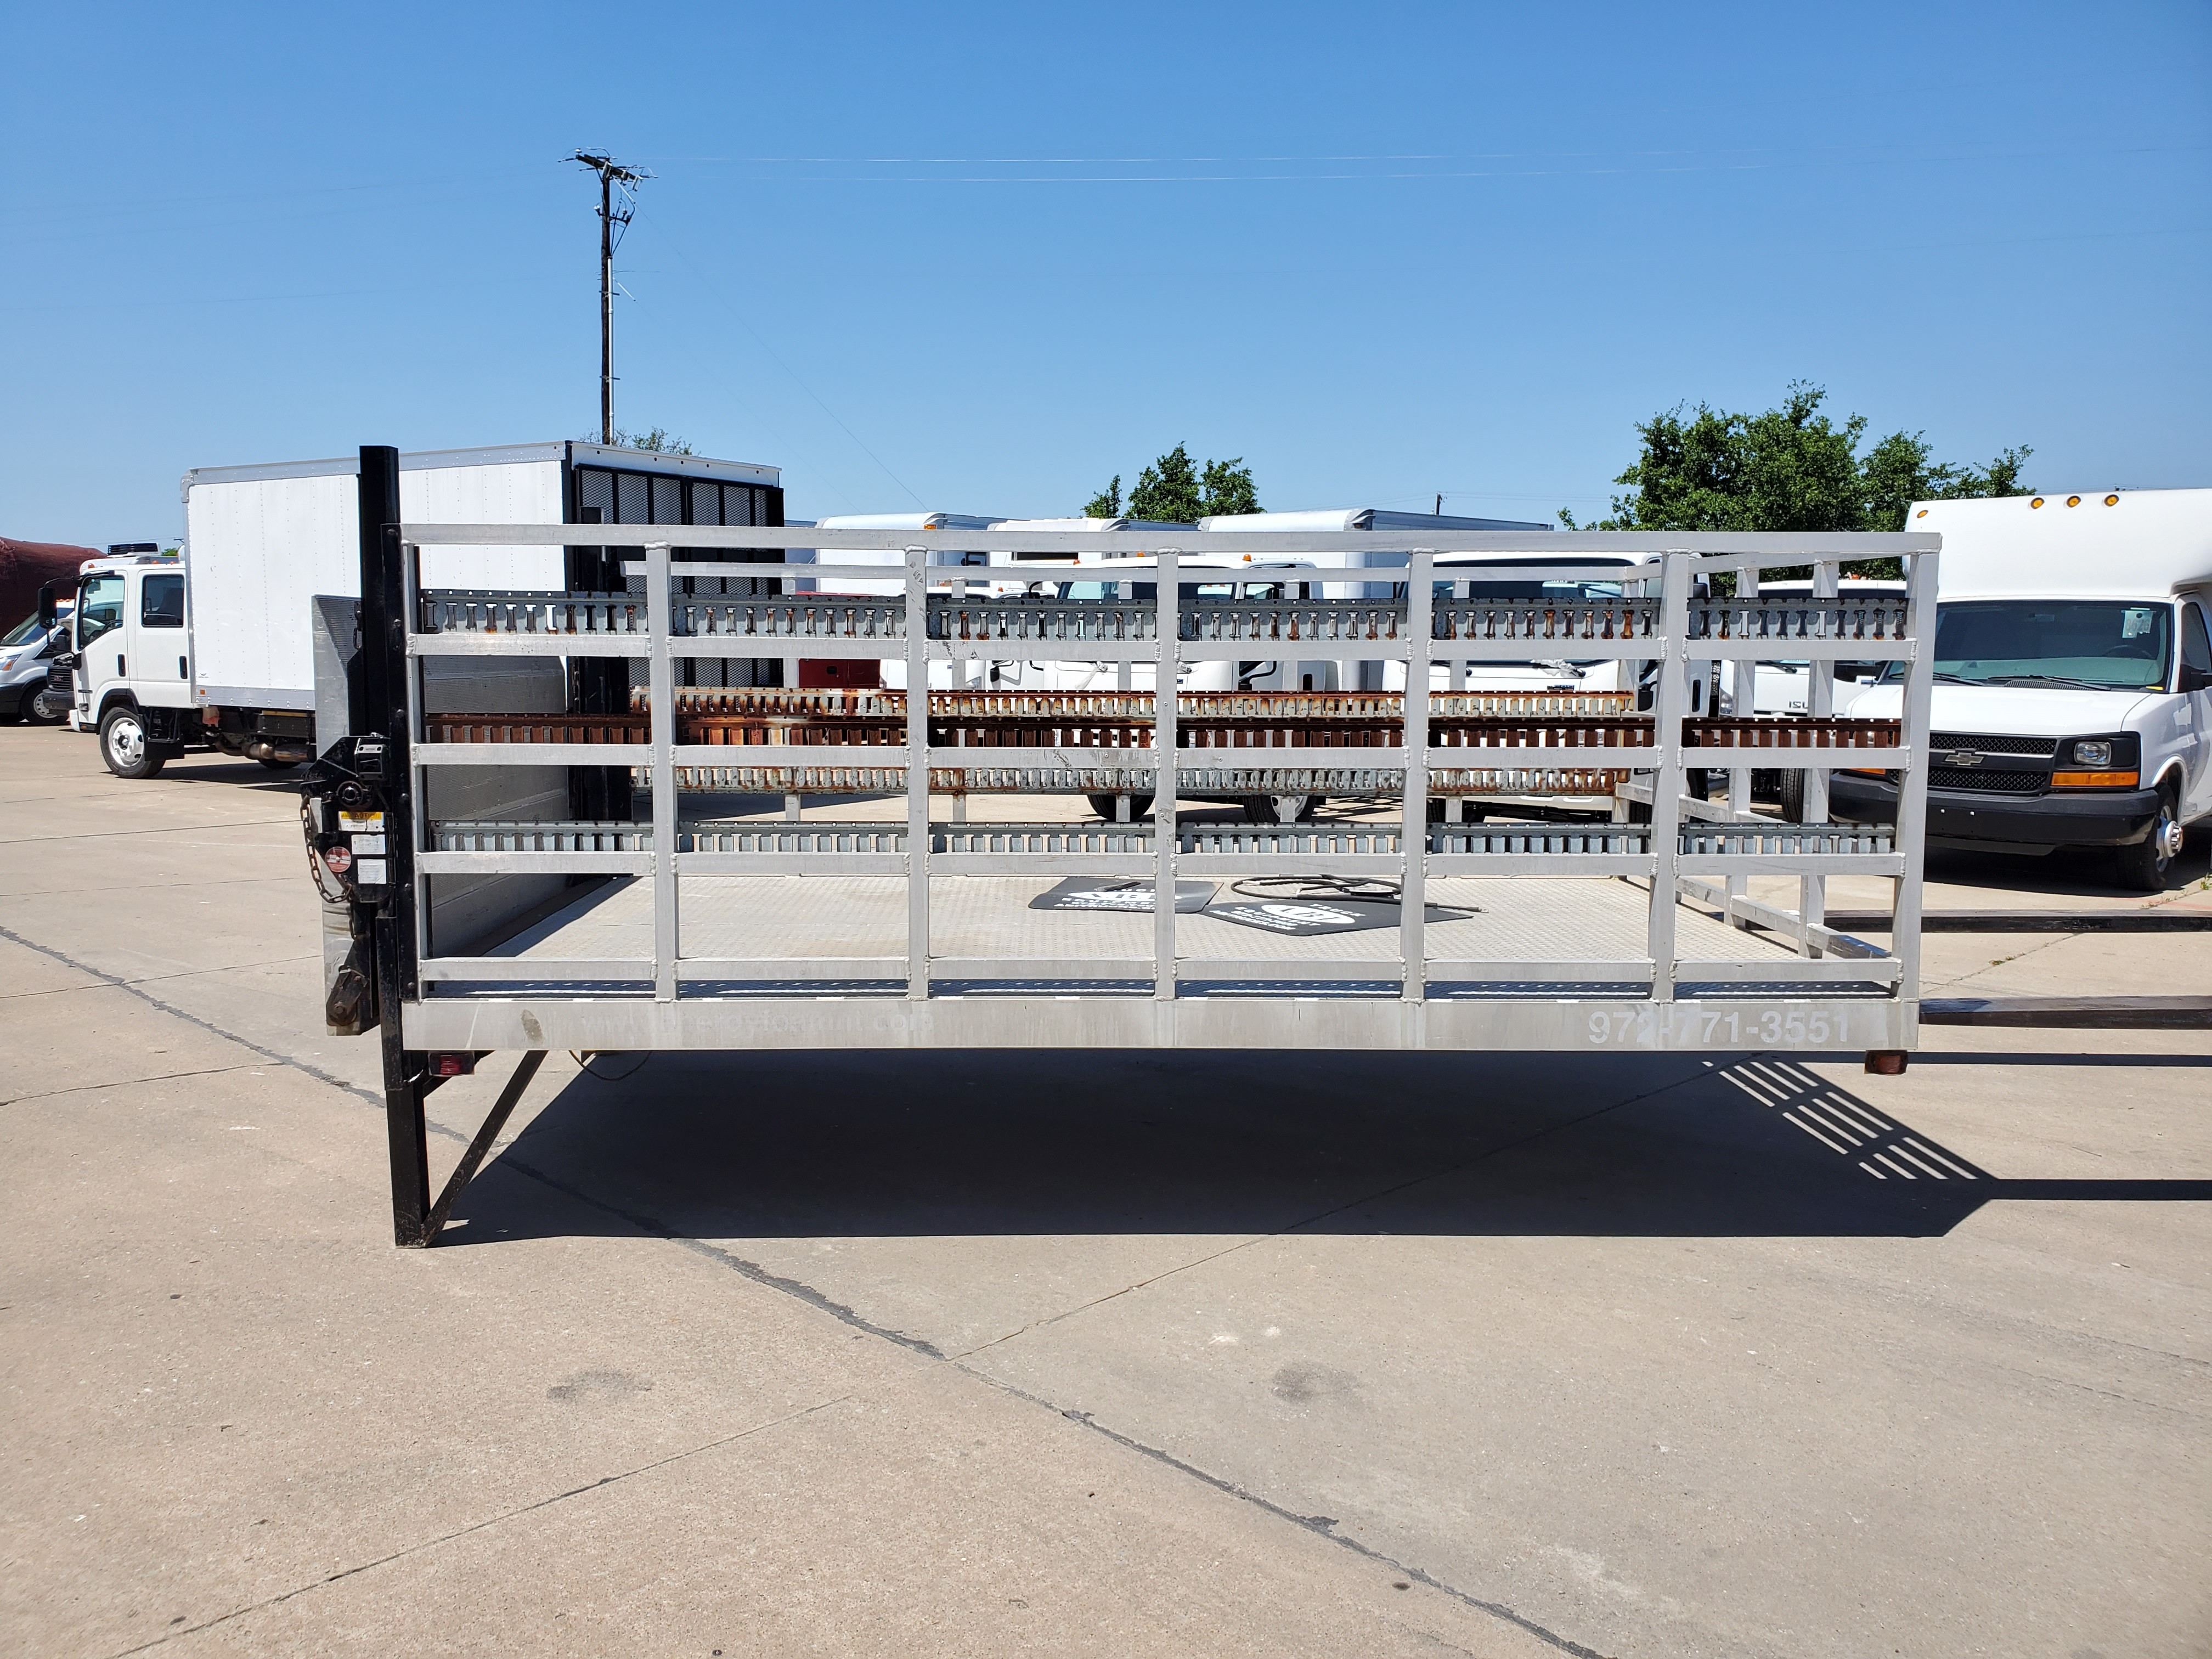 Used, 0, Flats & Bay, 13' ALUMINUM FLATBED, Flatbed Bodies